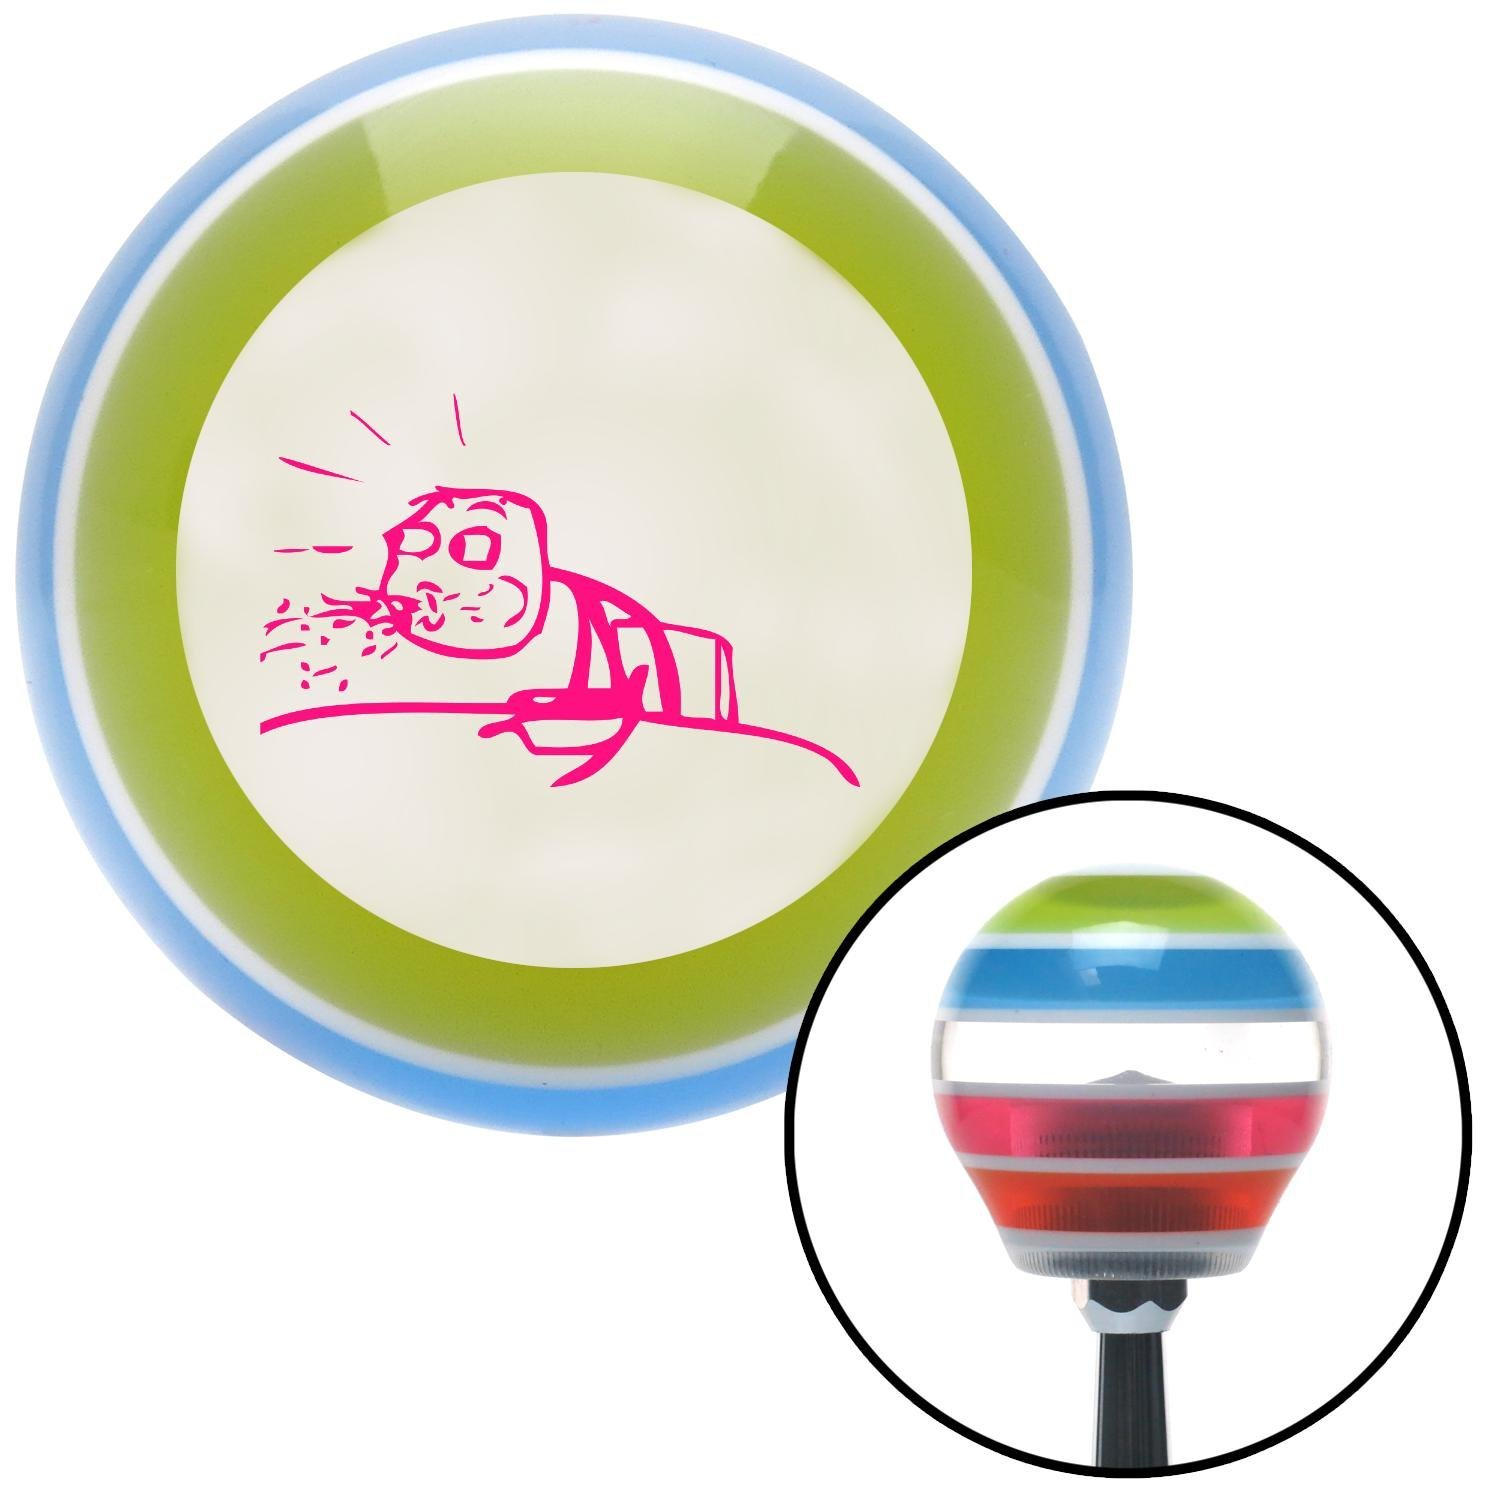 American Shifter 133716 Stripe Shift Knob with M16 x 1.5 Insert Pink Guy Cereal Spitting